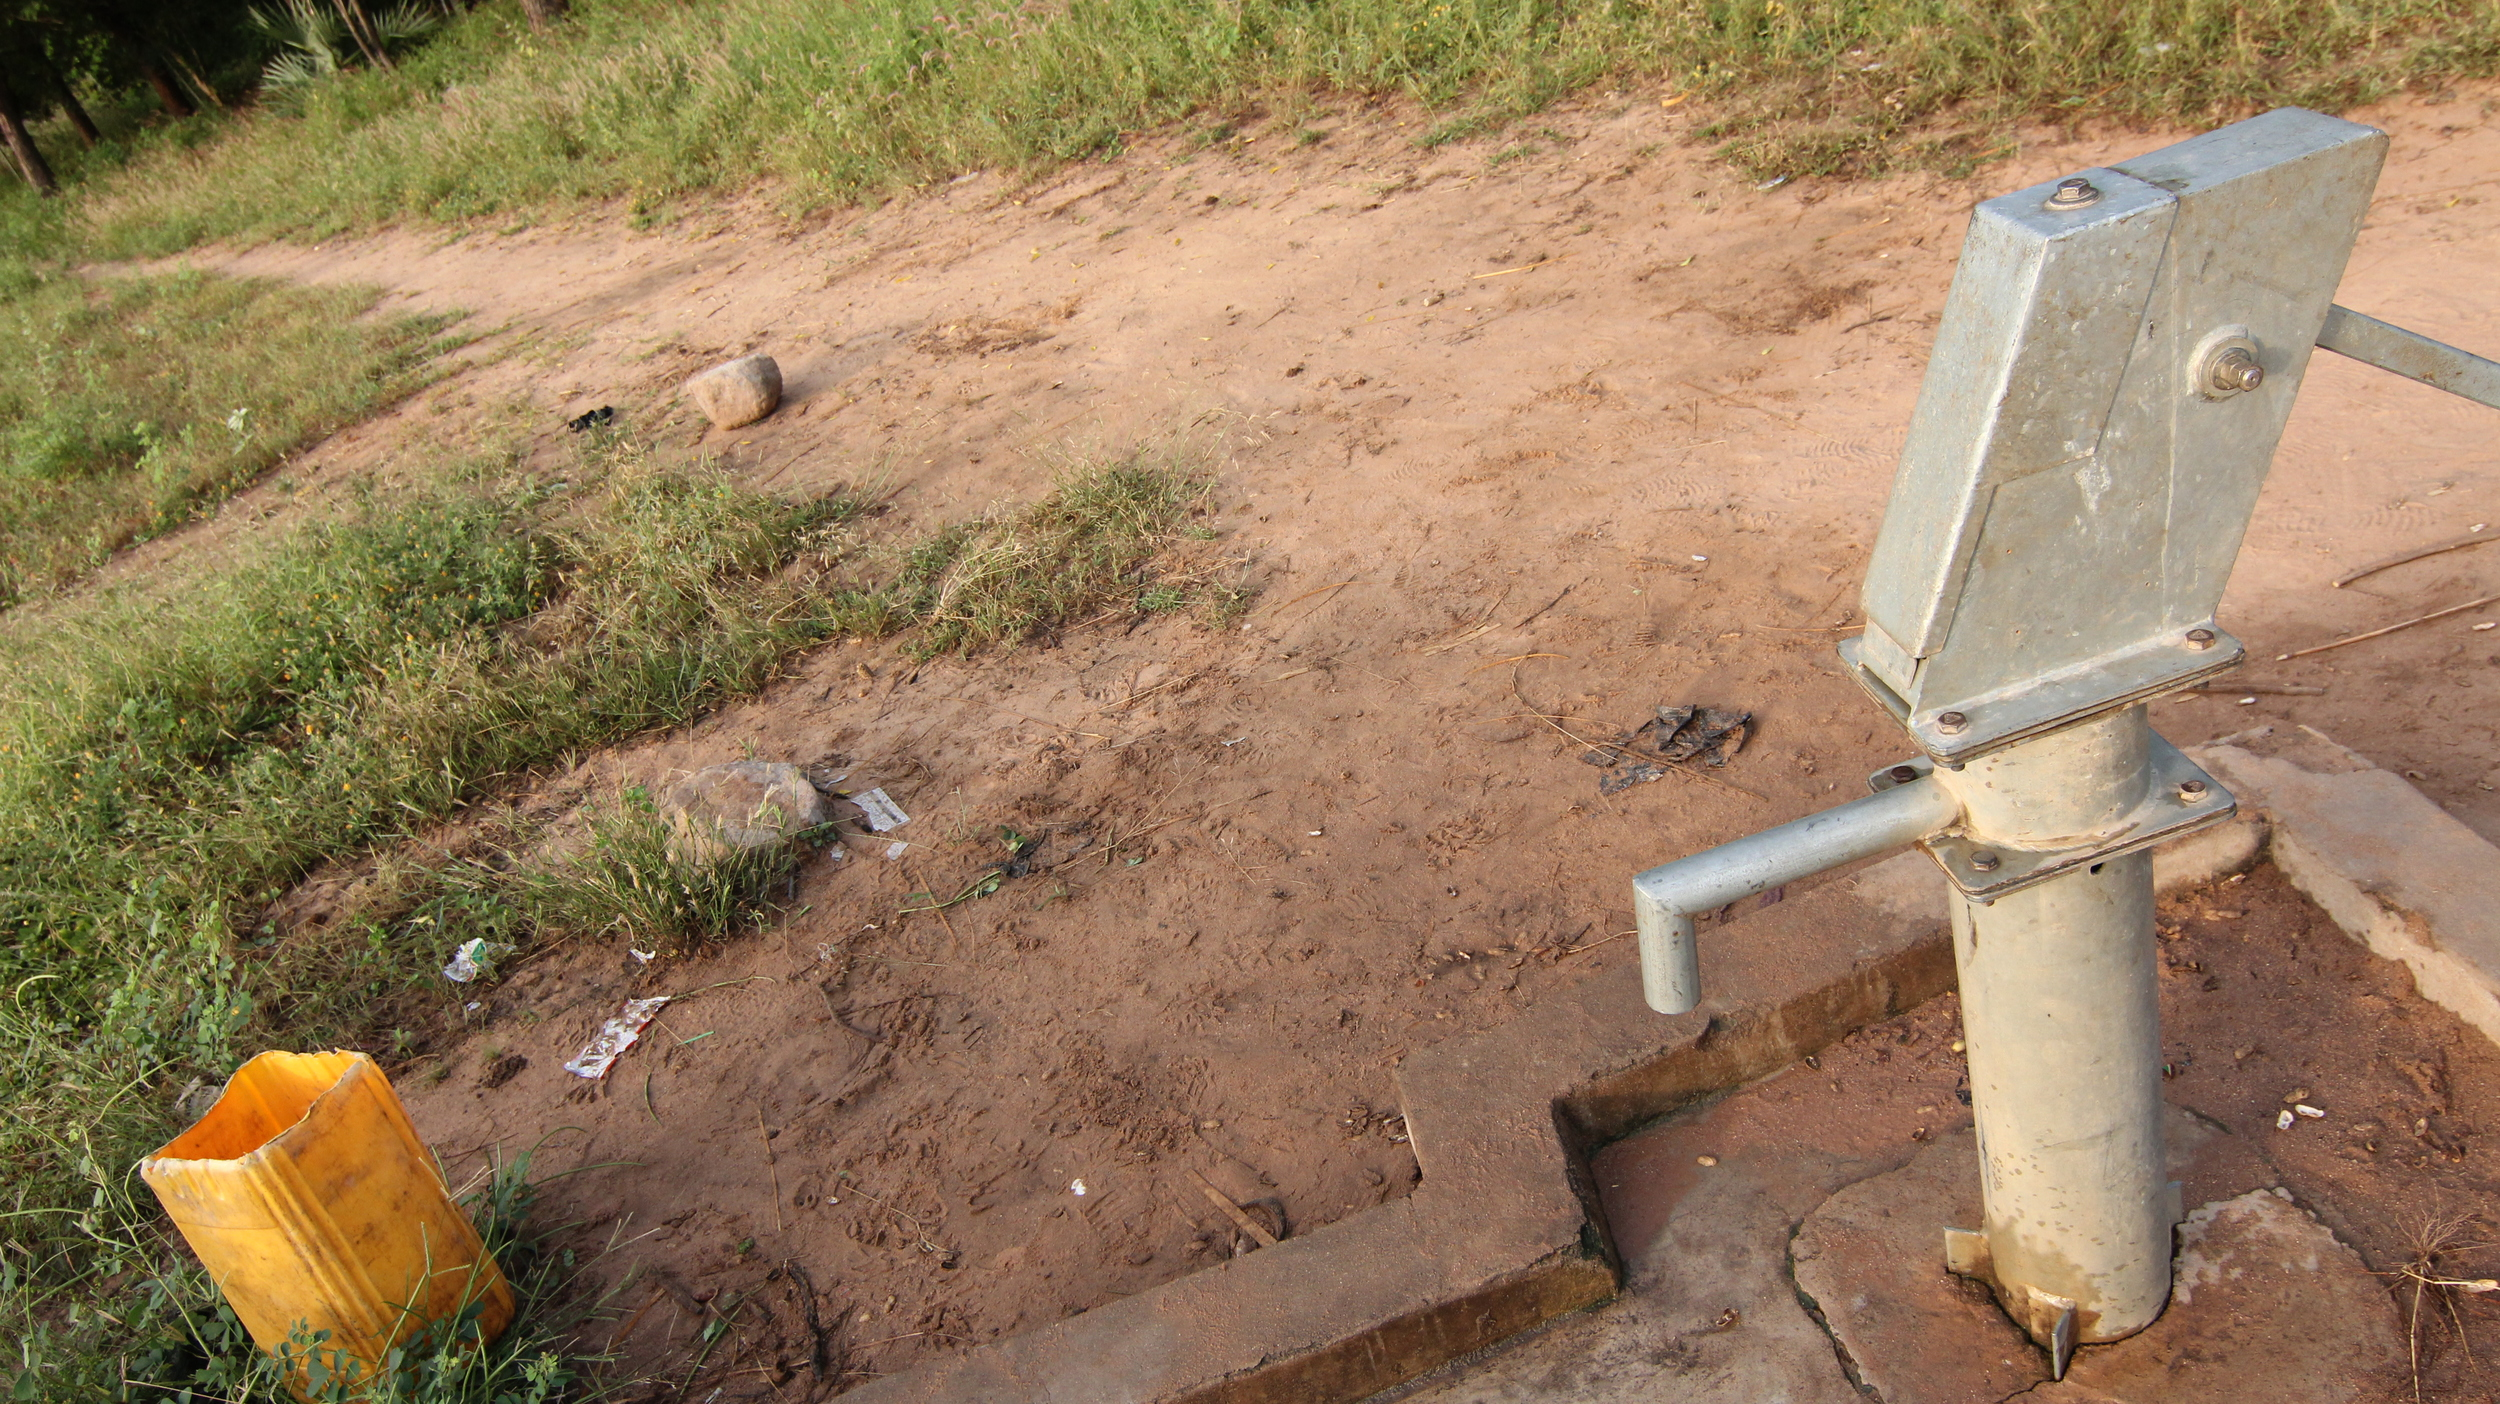 BTS has the beginnings of a decent water infrastructure: a number of wells with hand pumps.